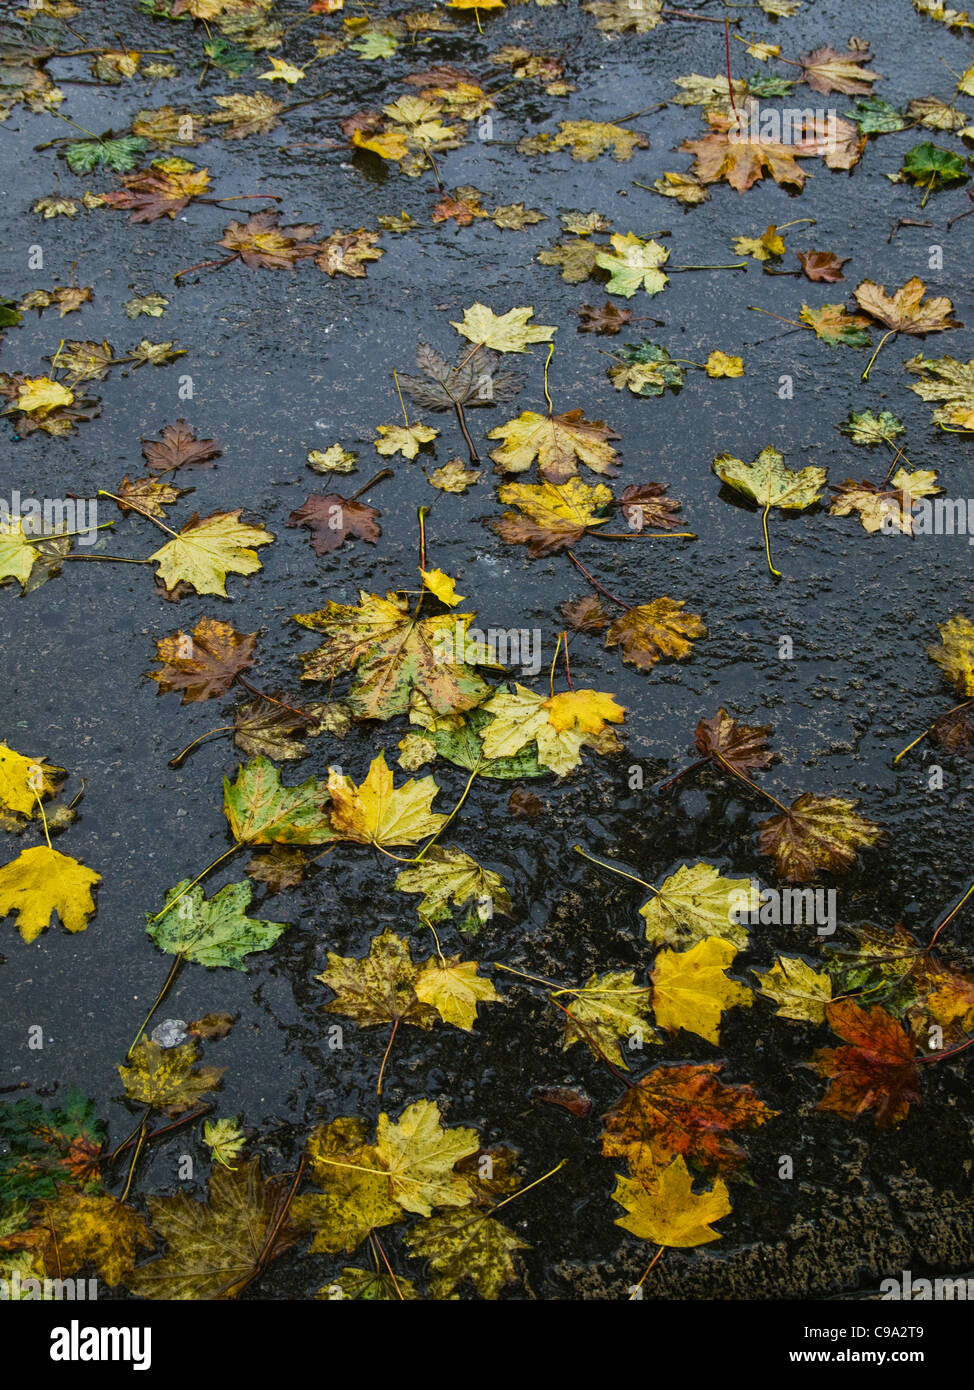 Autumn leaves scattered on a wet pavement, Dublin, Ireland - Stock Image